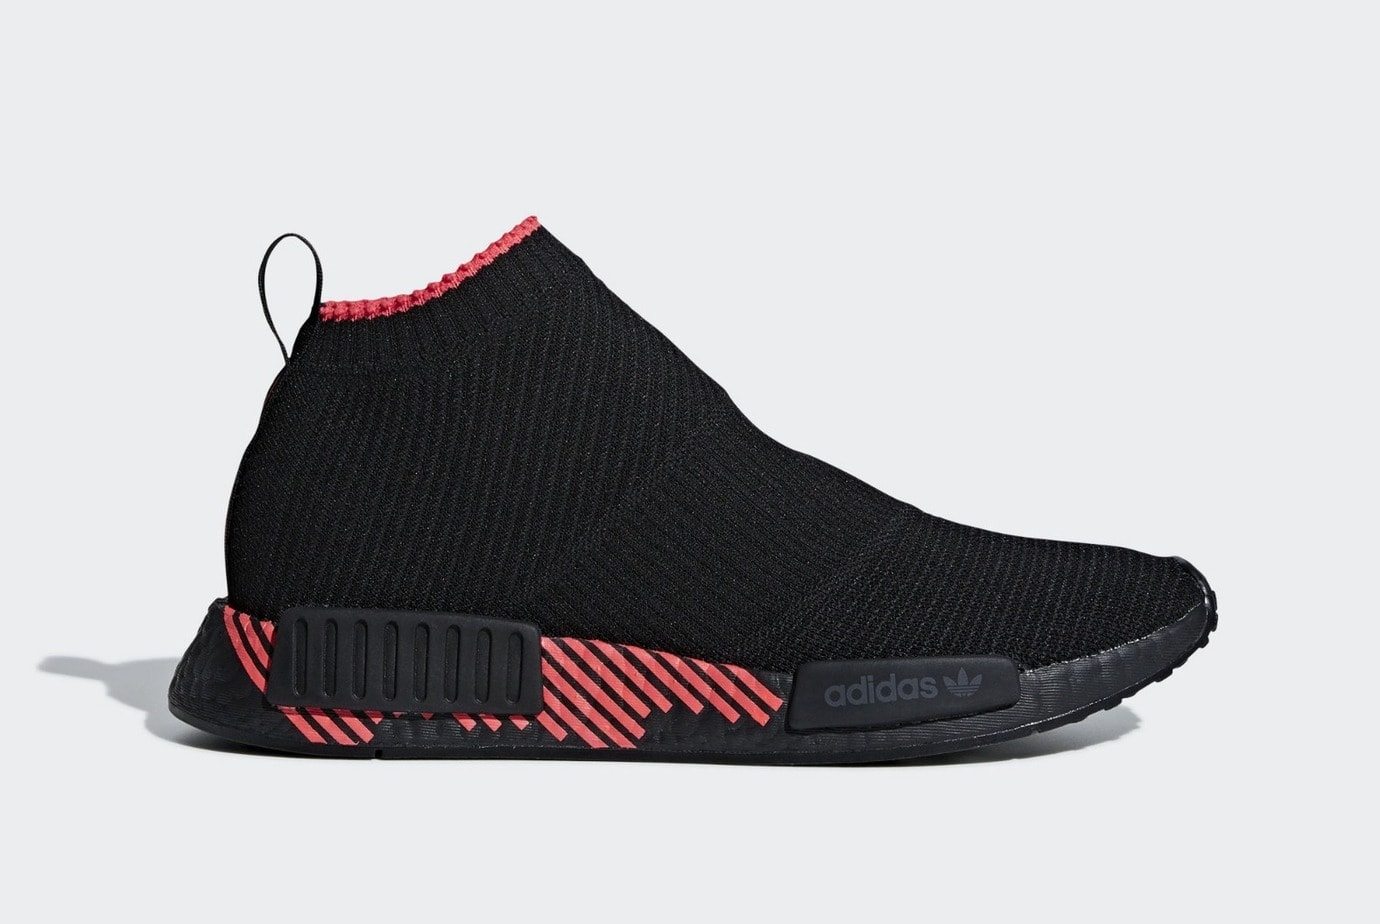 8f0590d6d701d The adidas NMD City Sock 1 Returns in All Black With a Bold Red Twist